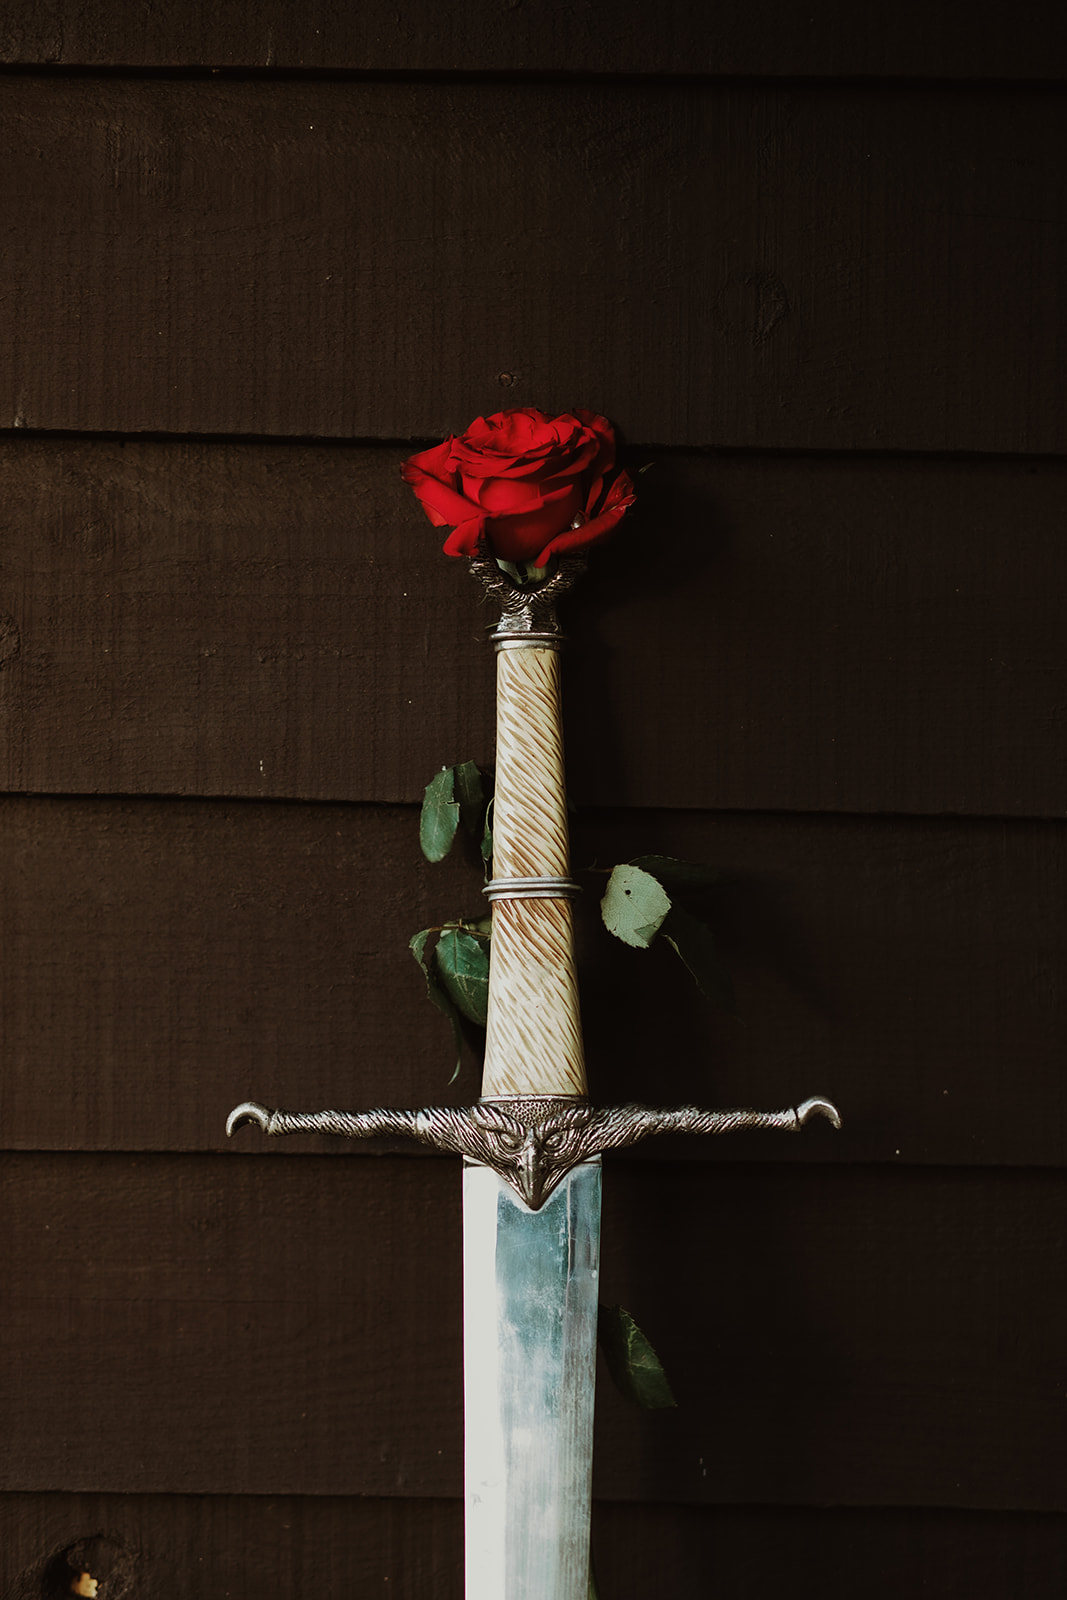 Game Of Thrones Wedding- Tom Jeavons Photography- Unconventional Wedding- Fantasy Wedding- Themed Wedding- wedding sword